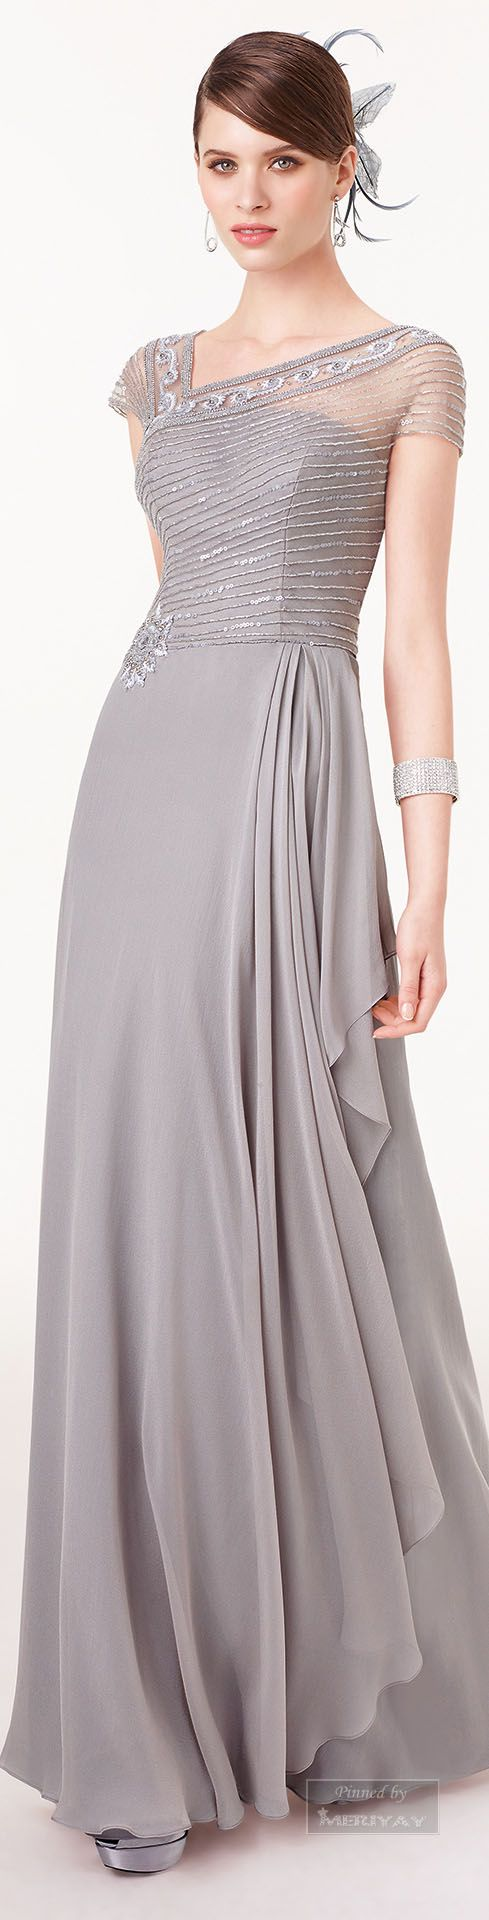 Mama de novia, velo Aire Barcelona ~ Evening Gown, Silver Grey, 2015.